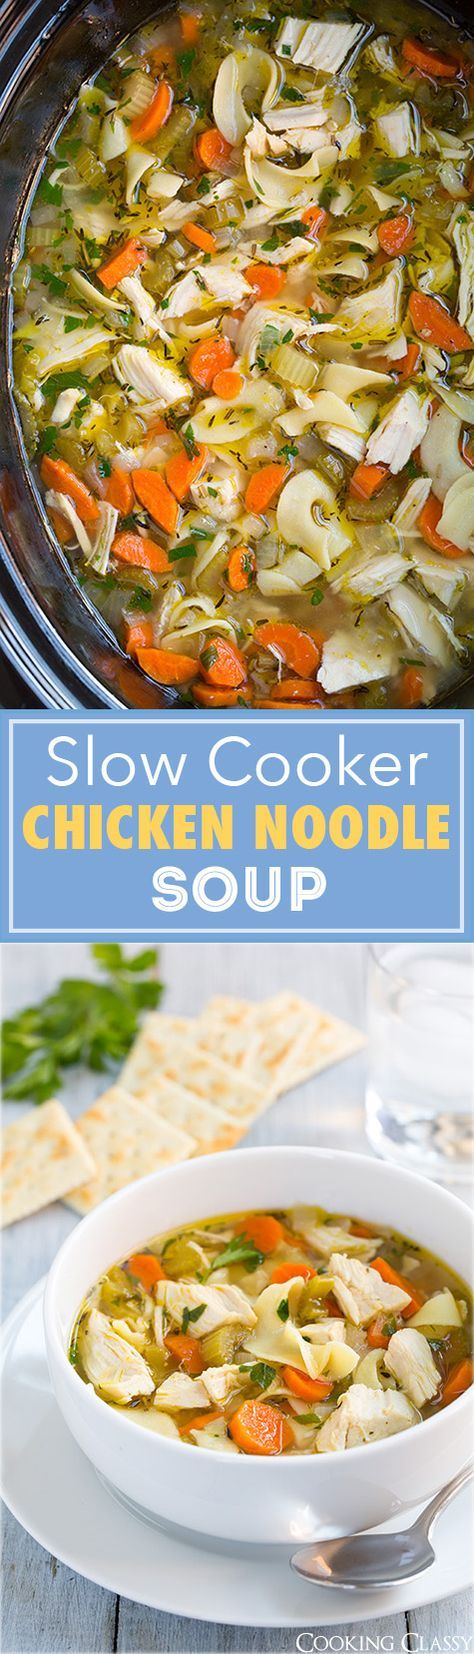 100+ Chicken Noodle Recipes on Pinterest | Easy meals, Crockpot ...